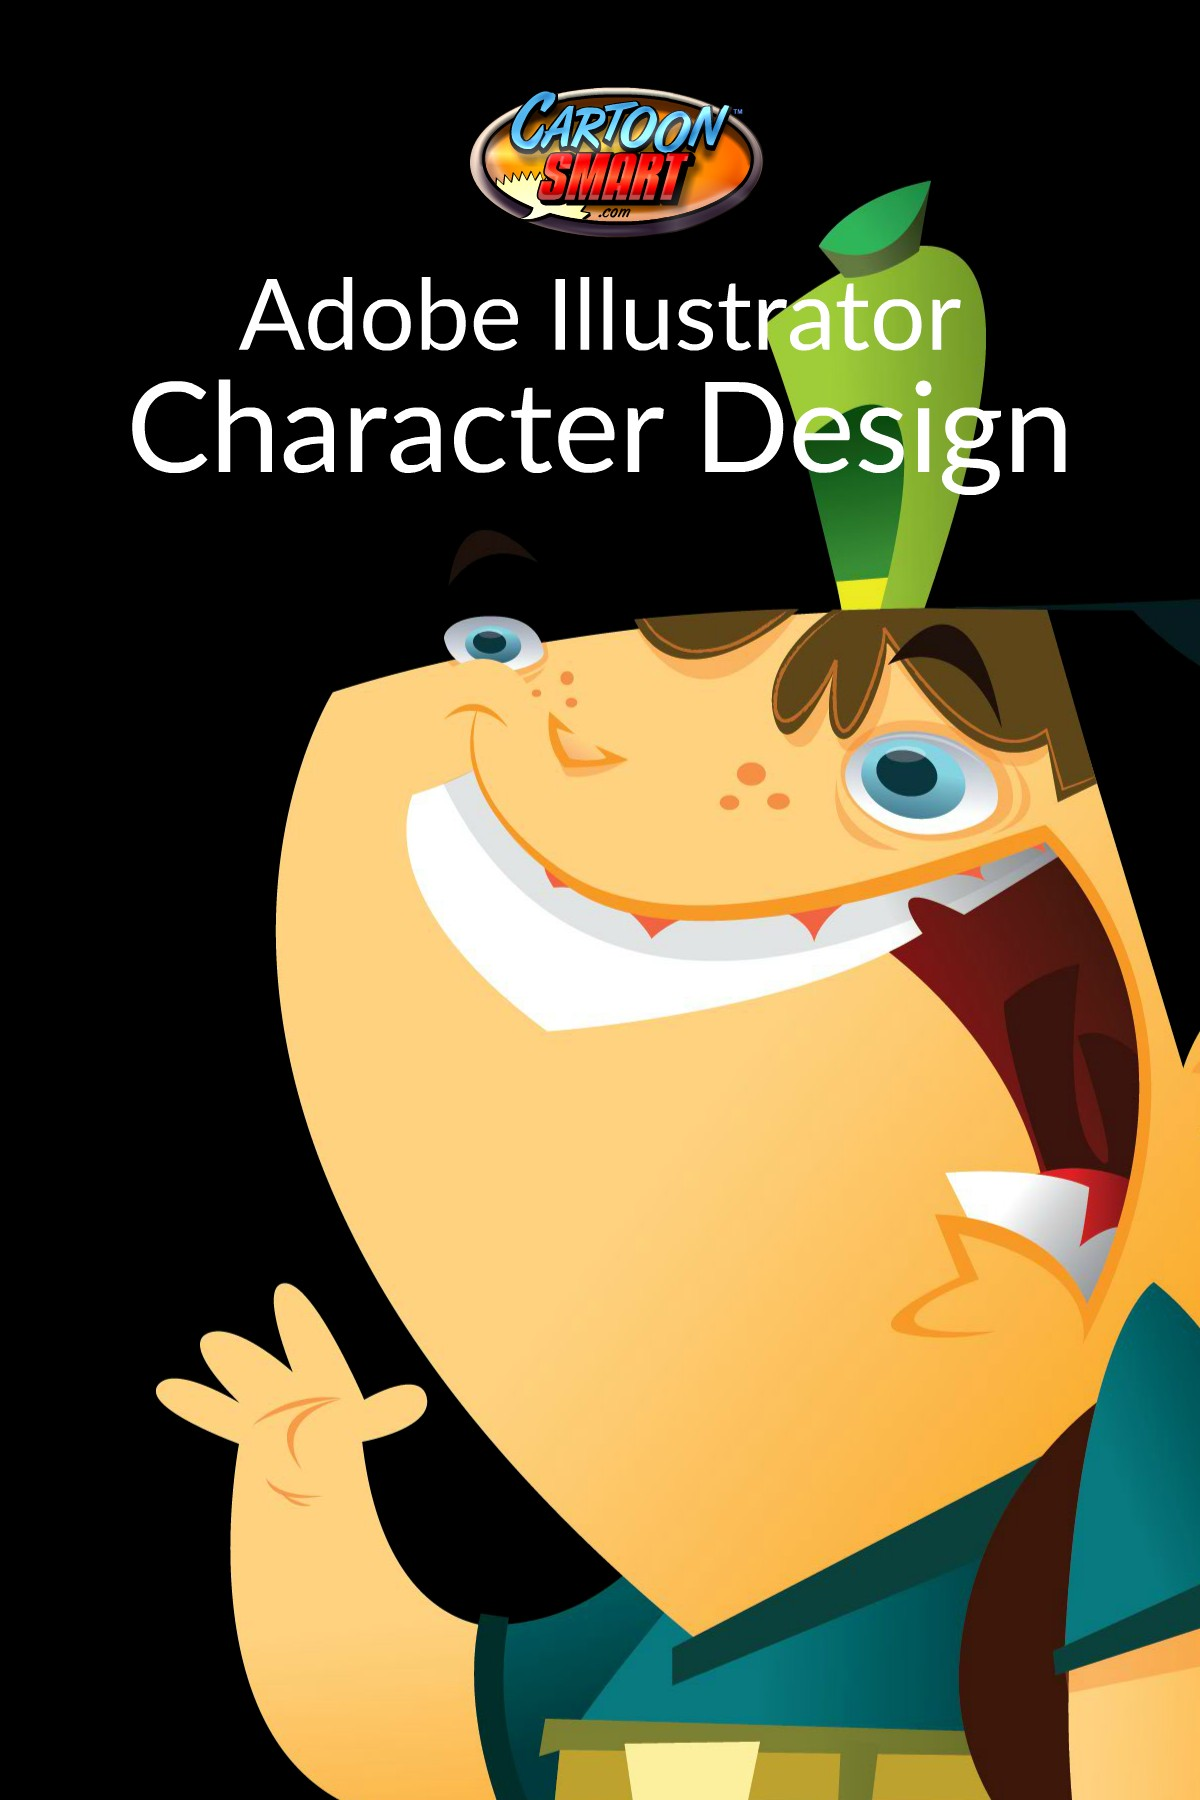 Cartoonsmart Character Design With Illustrator : Adobe illustrator character design subscriber access